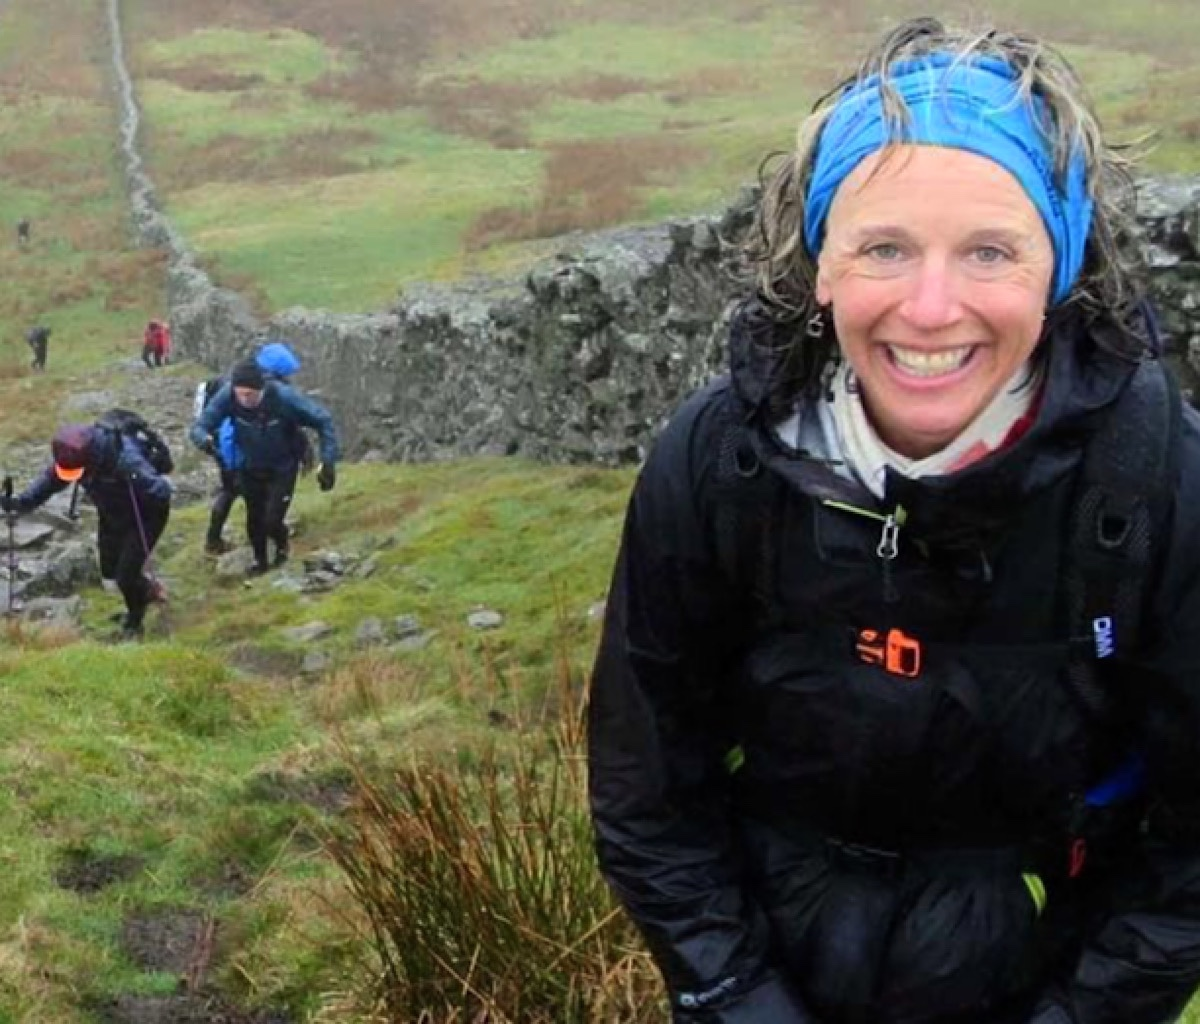 In a downpour on Gragareth during the Fellsman Ultramarathon in the Yorkshire Moors.